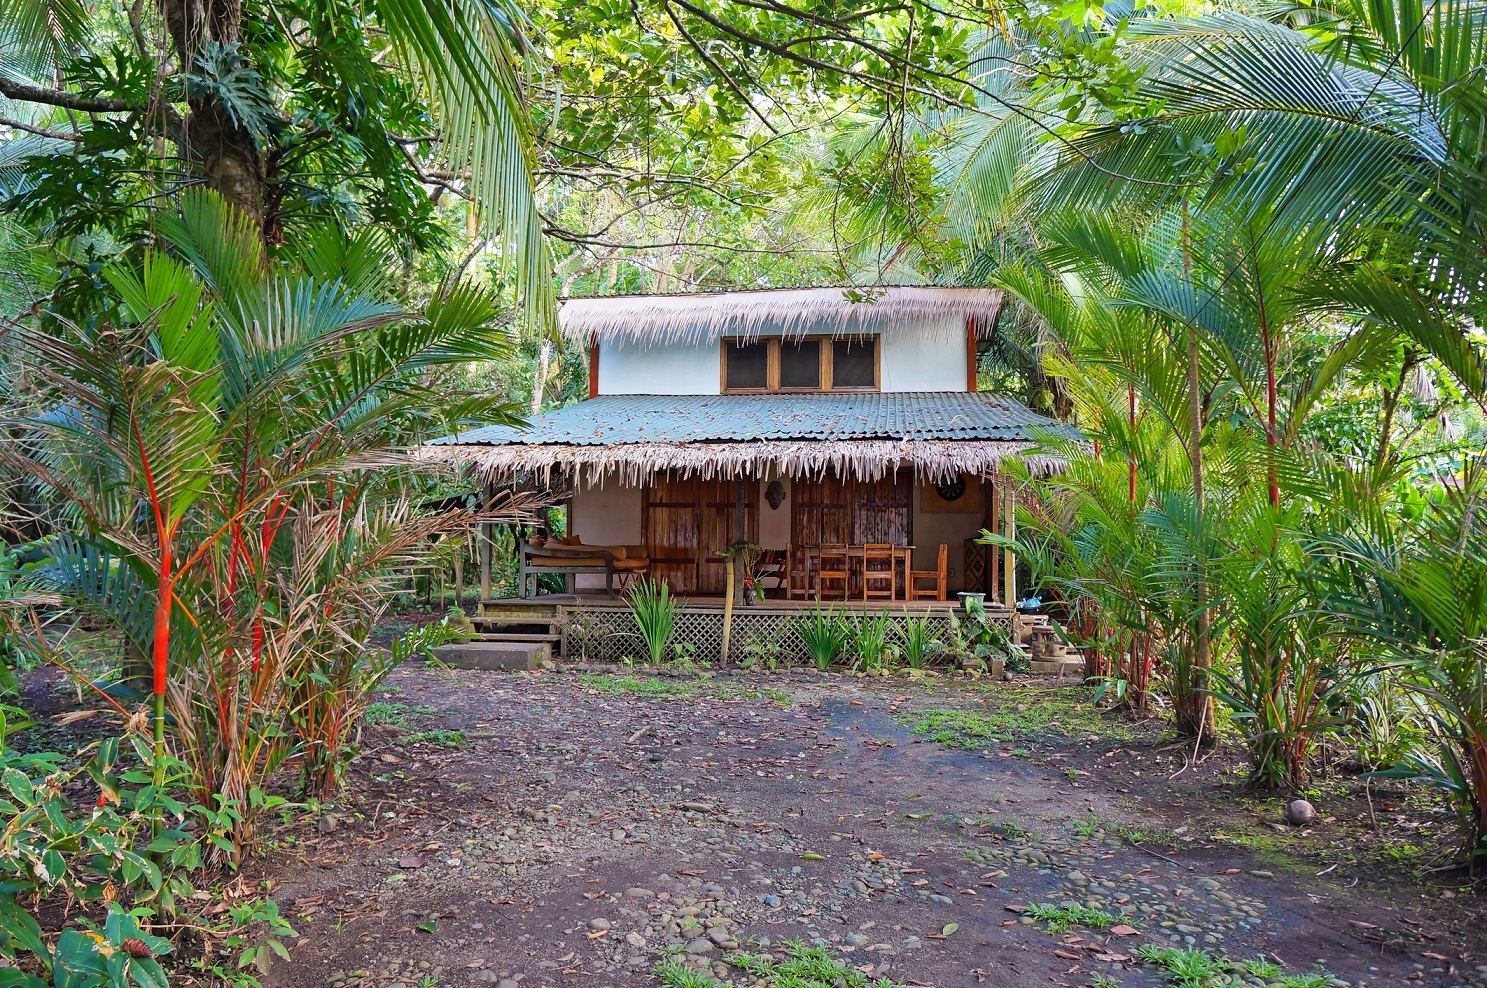 Tropical home with exotic vegetation in Costa Rica